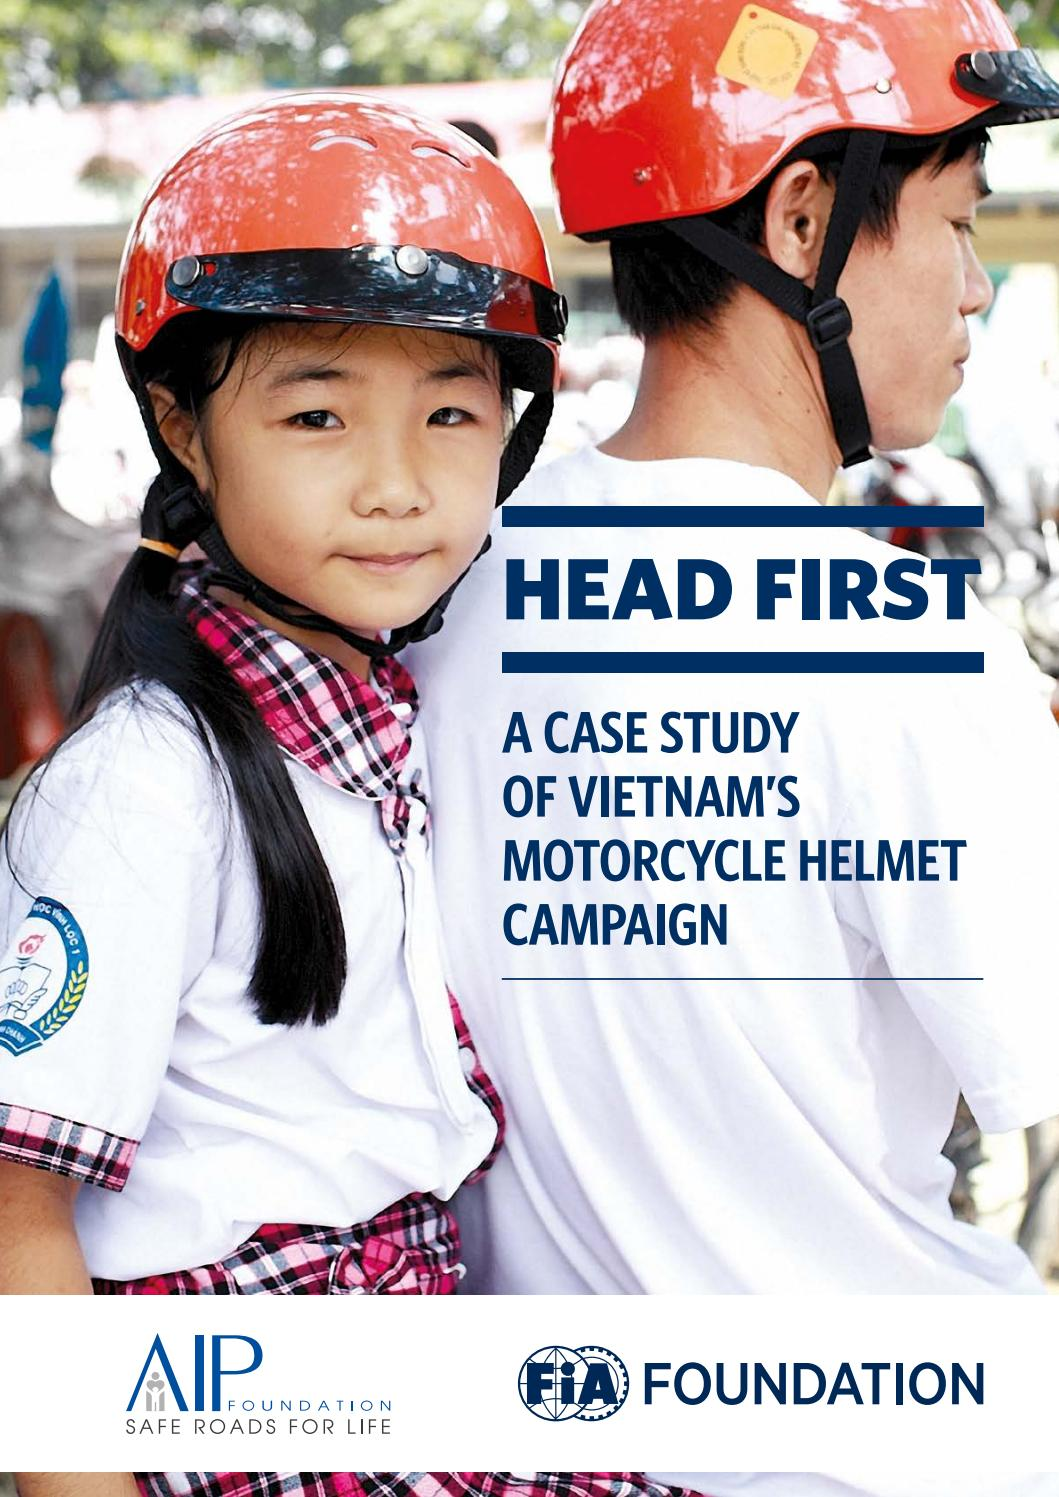 Why Should Wearing A Helmet When Motorcycling : should, wearing, helmet, motorcycling, First:, Study, Vietnam's, Motorcycle, Helmet, Campaign, Foundation, Issuu